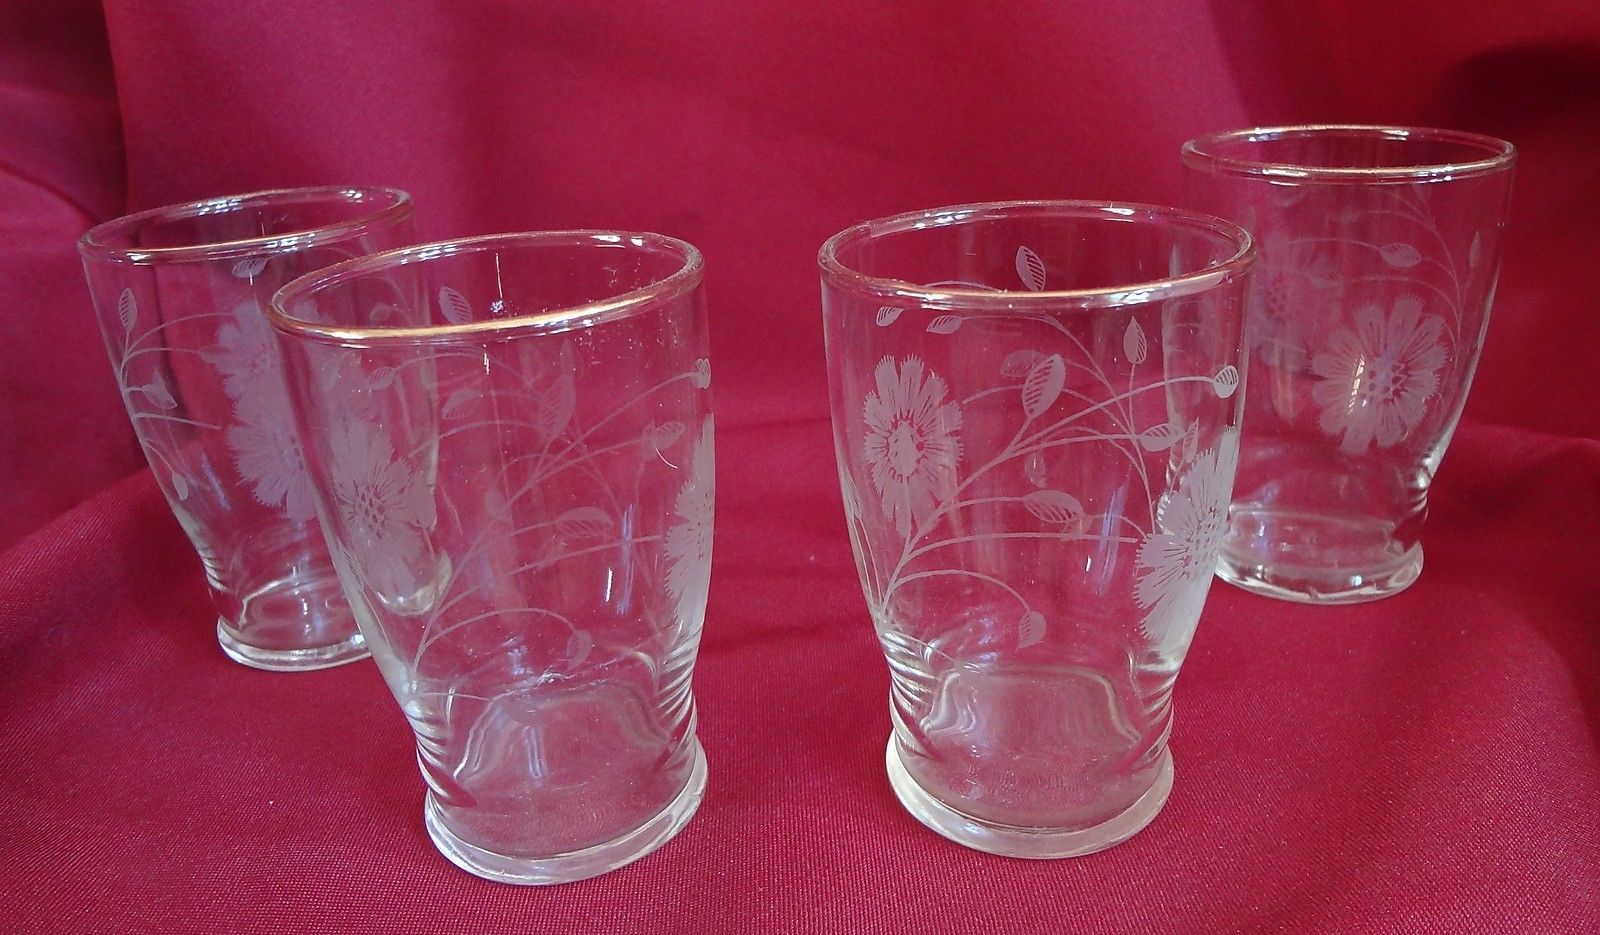 Set of 4 Glasses with Daisy Pattern Tableware